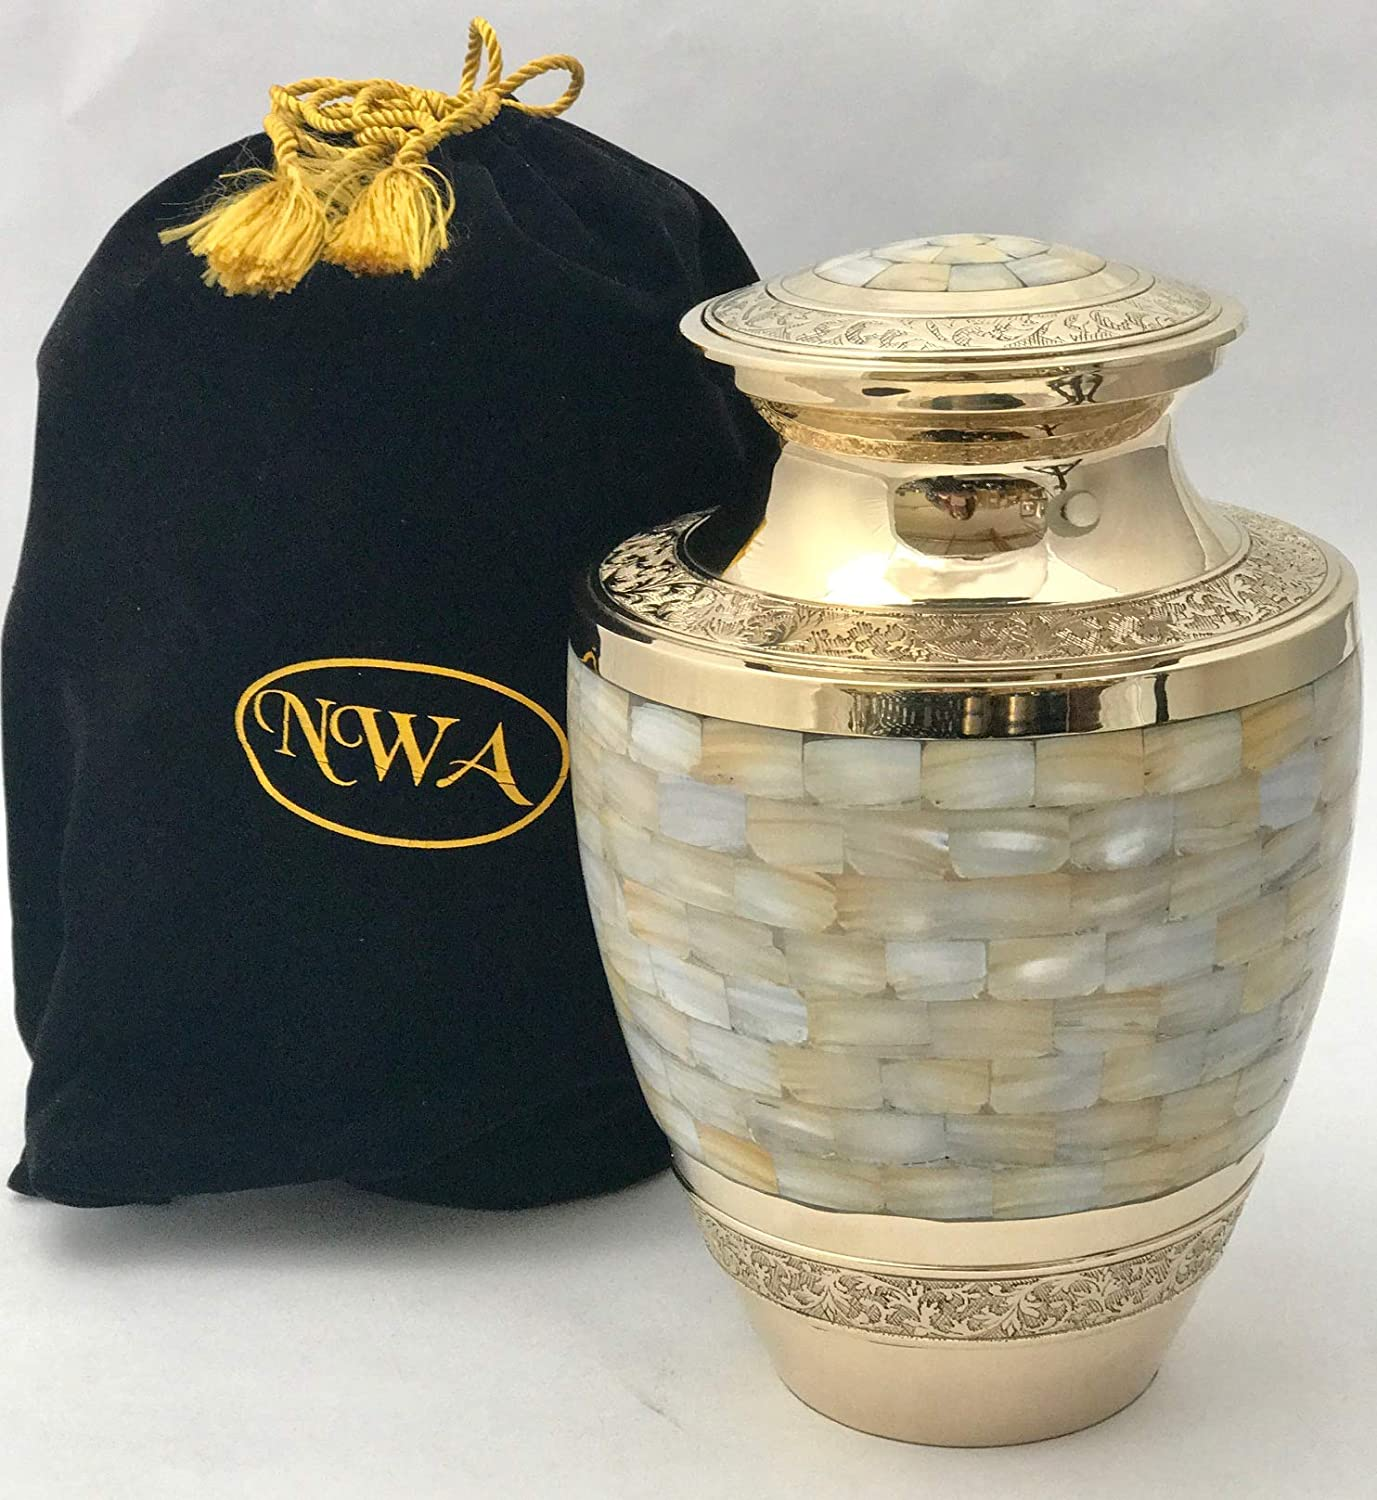 Urn for Ashes Brass Adult Cremation Memorial Funeral Large Ash Container